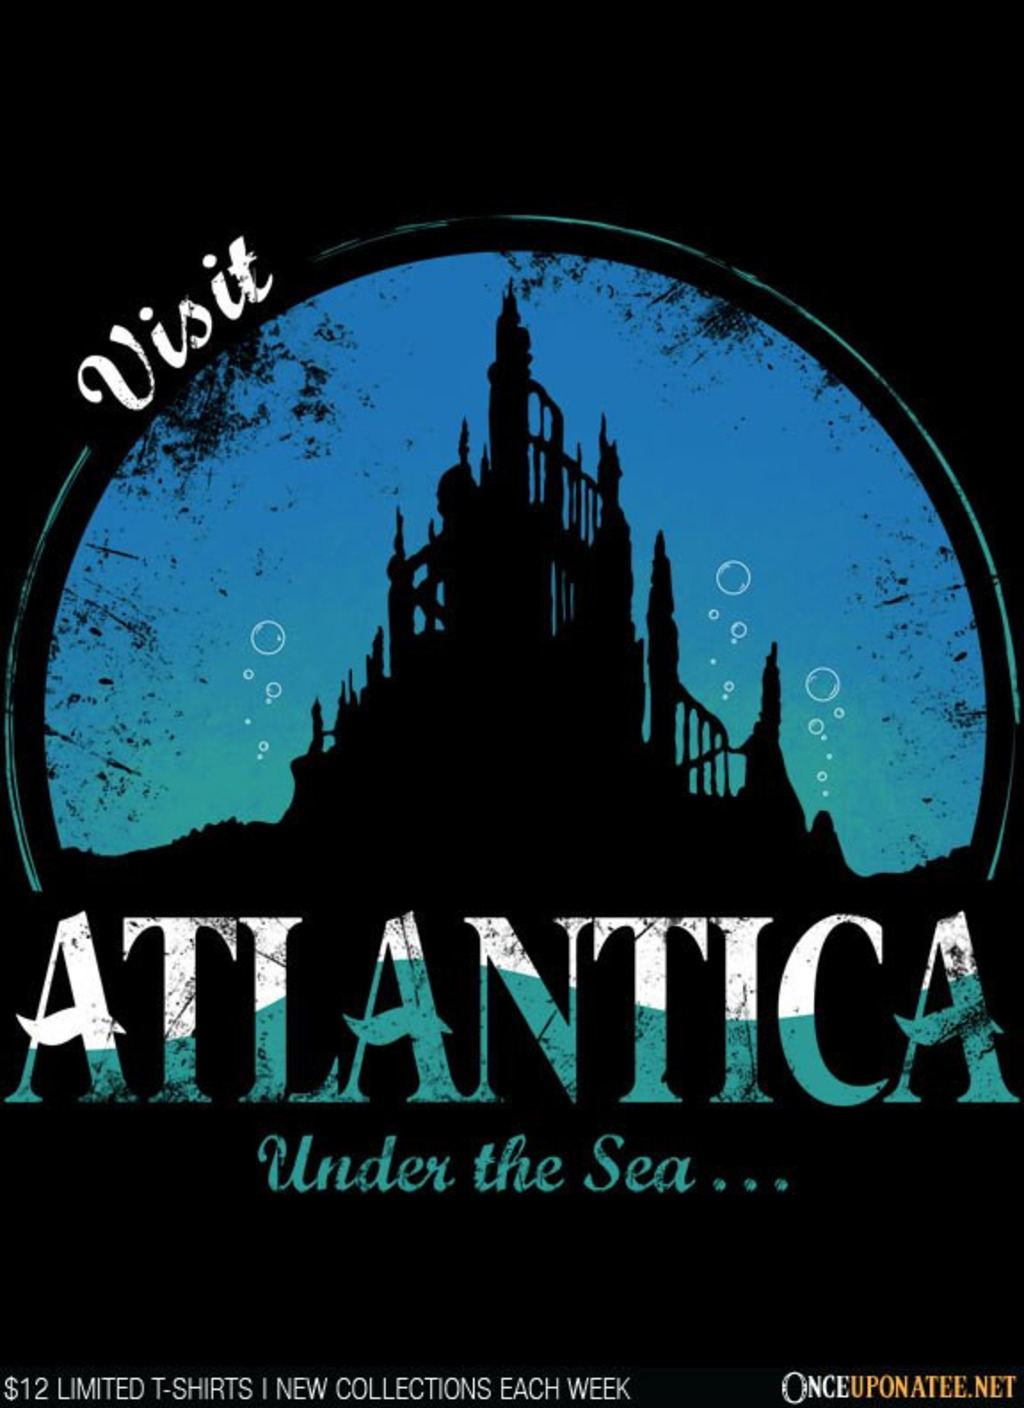 Once Upon a Tee: Visit Atlantica